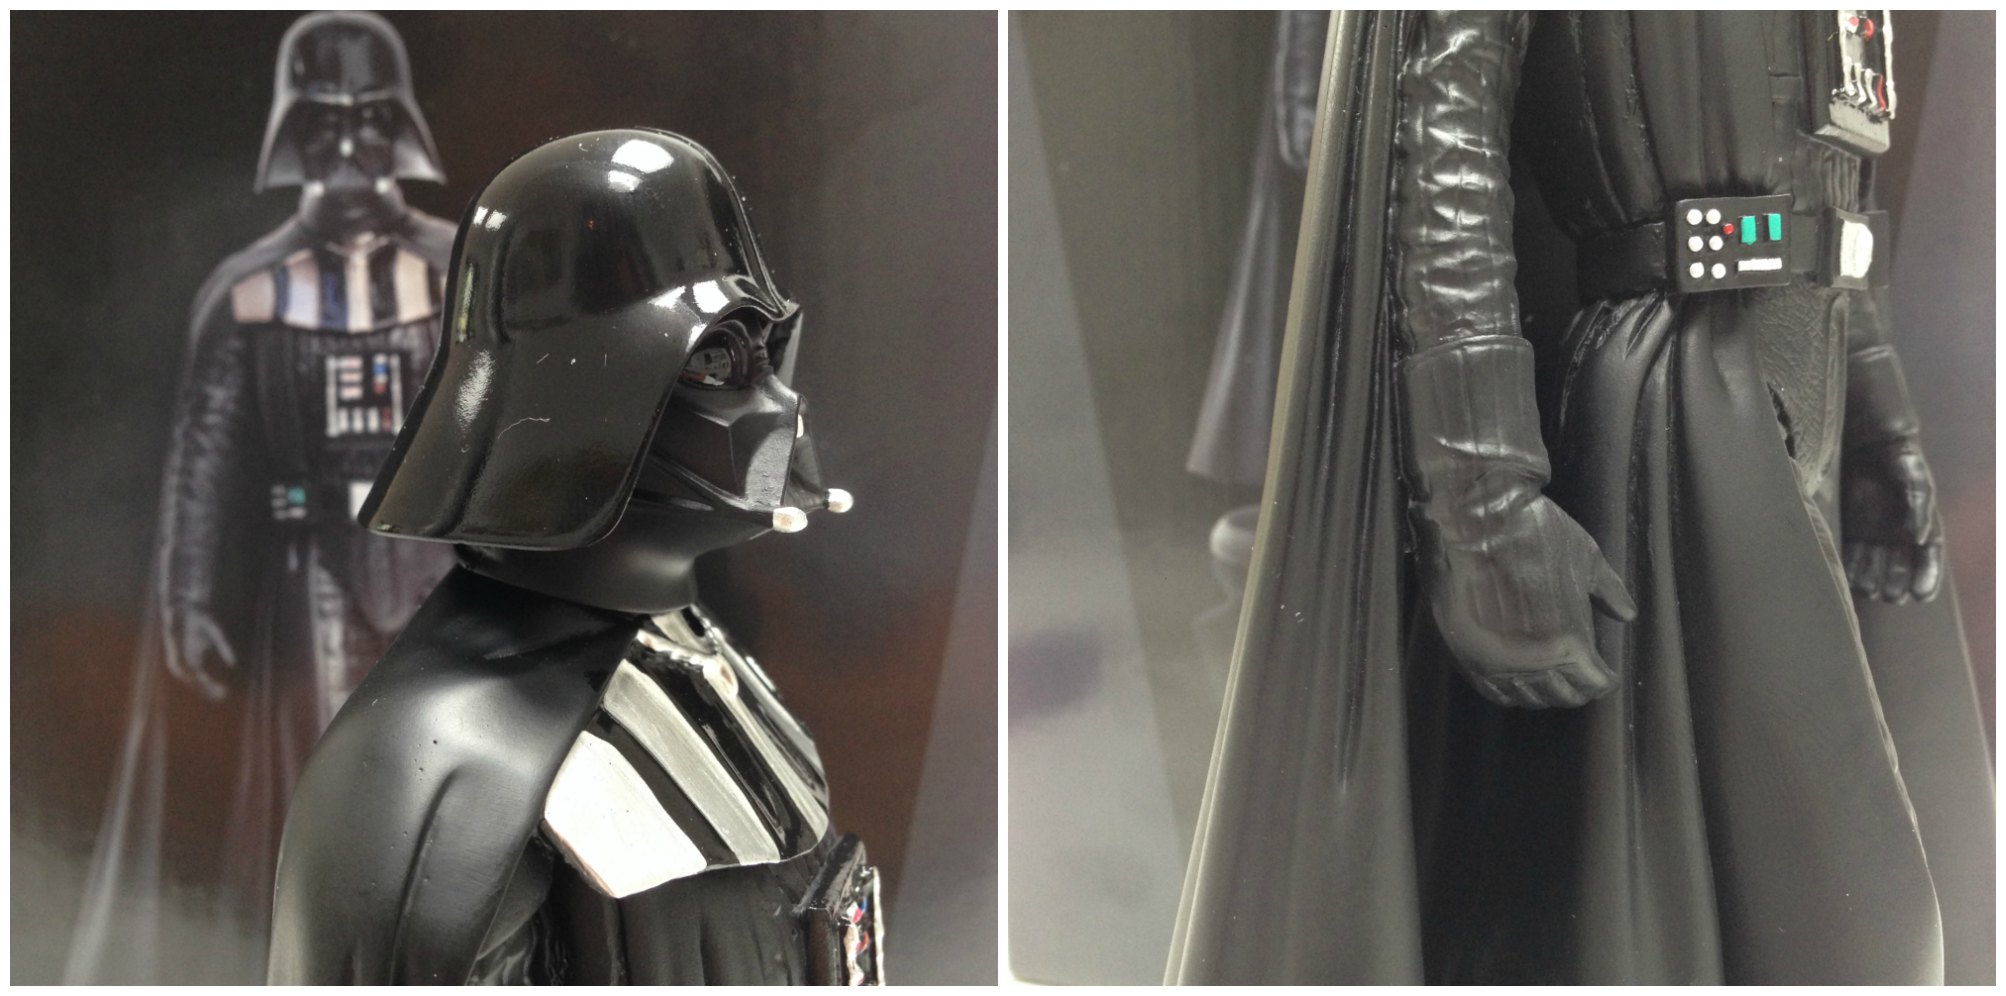 Darth Vader - Attakus Elite Colection - Star Wars - Wendros - Merchandise - Darth Vader-figur - Fiktion & Kultur (4)